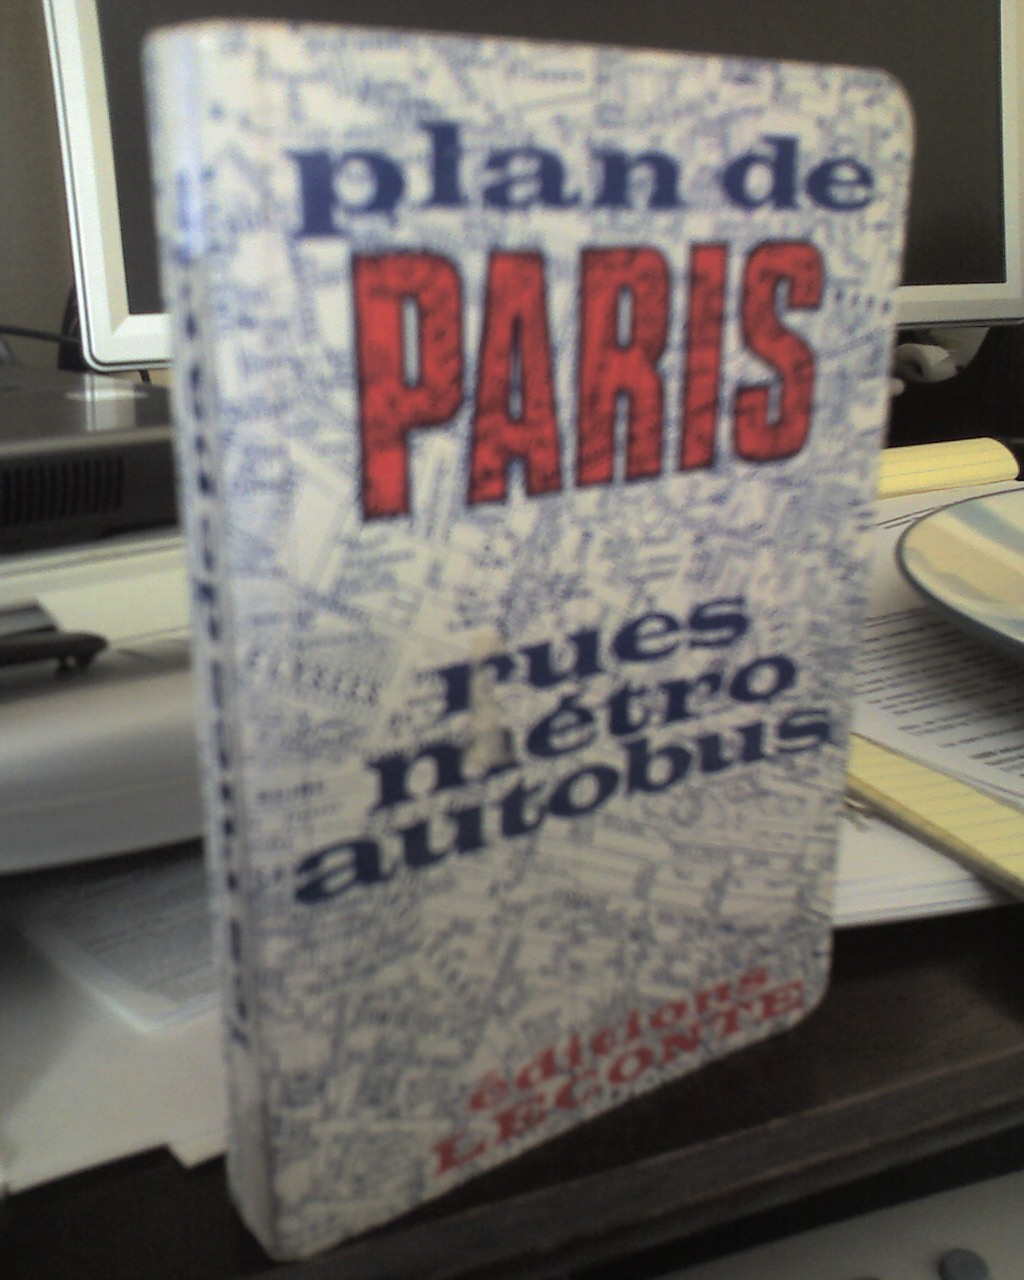 Guide to paris streets and public transport.